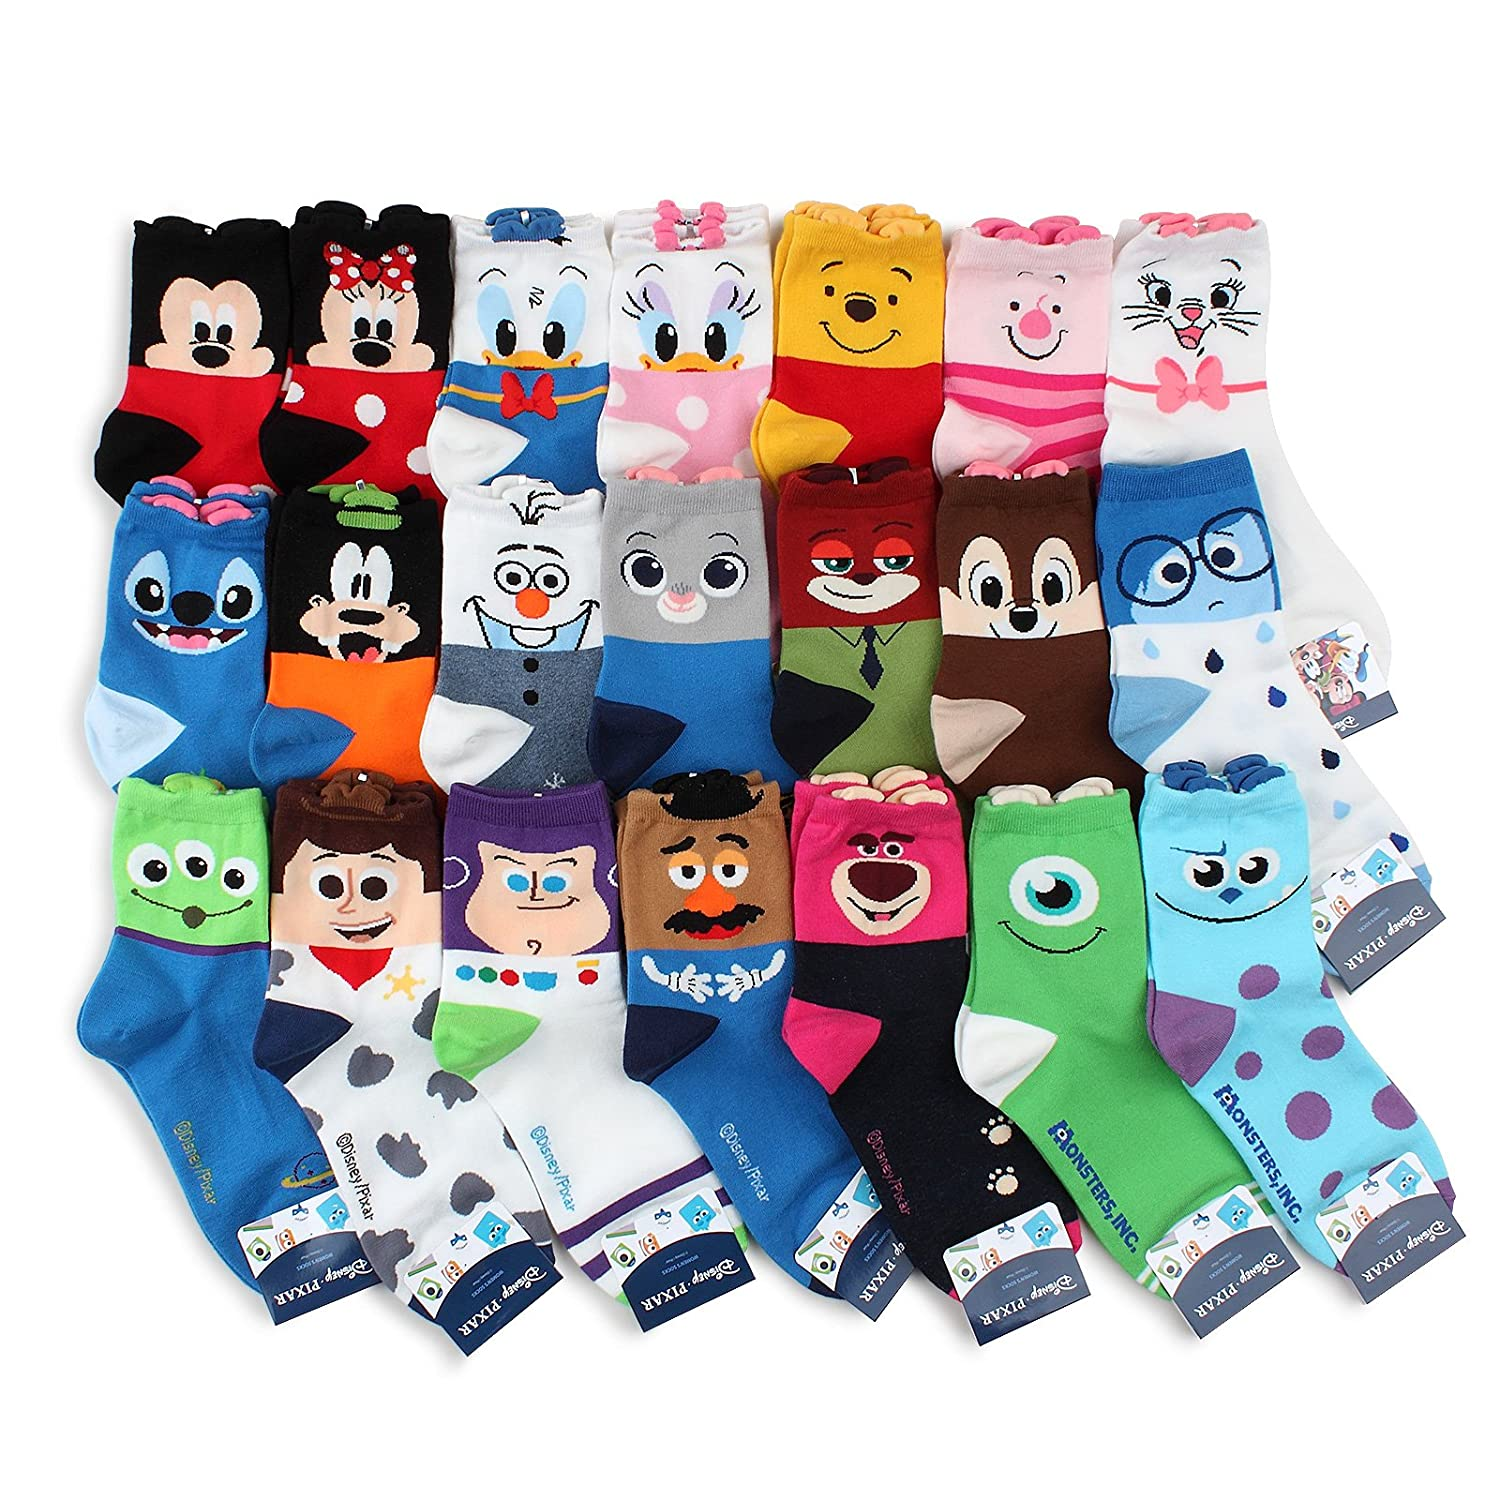 Disney Princess Pixar Movies Official Socks Collection With INTYPE Pouch